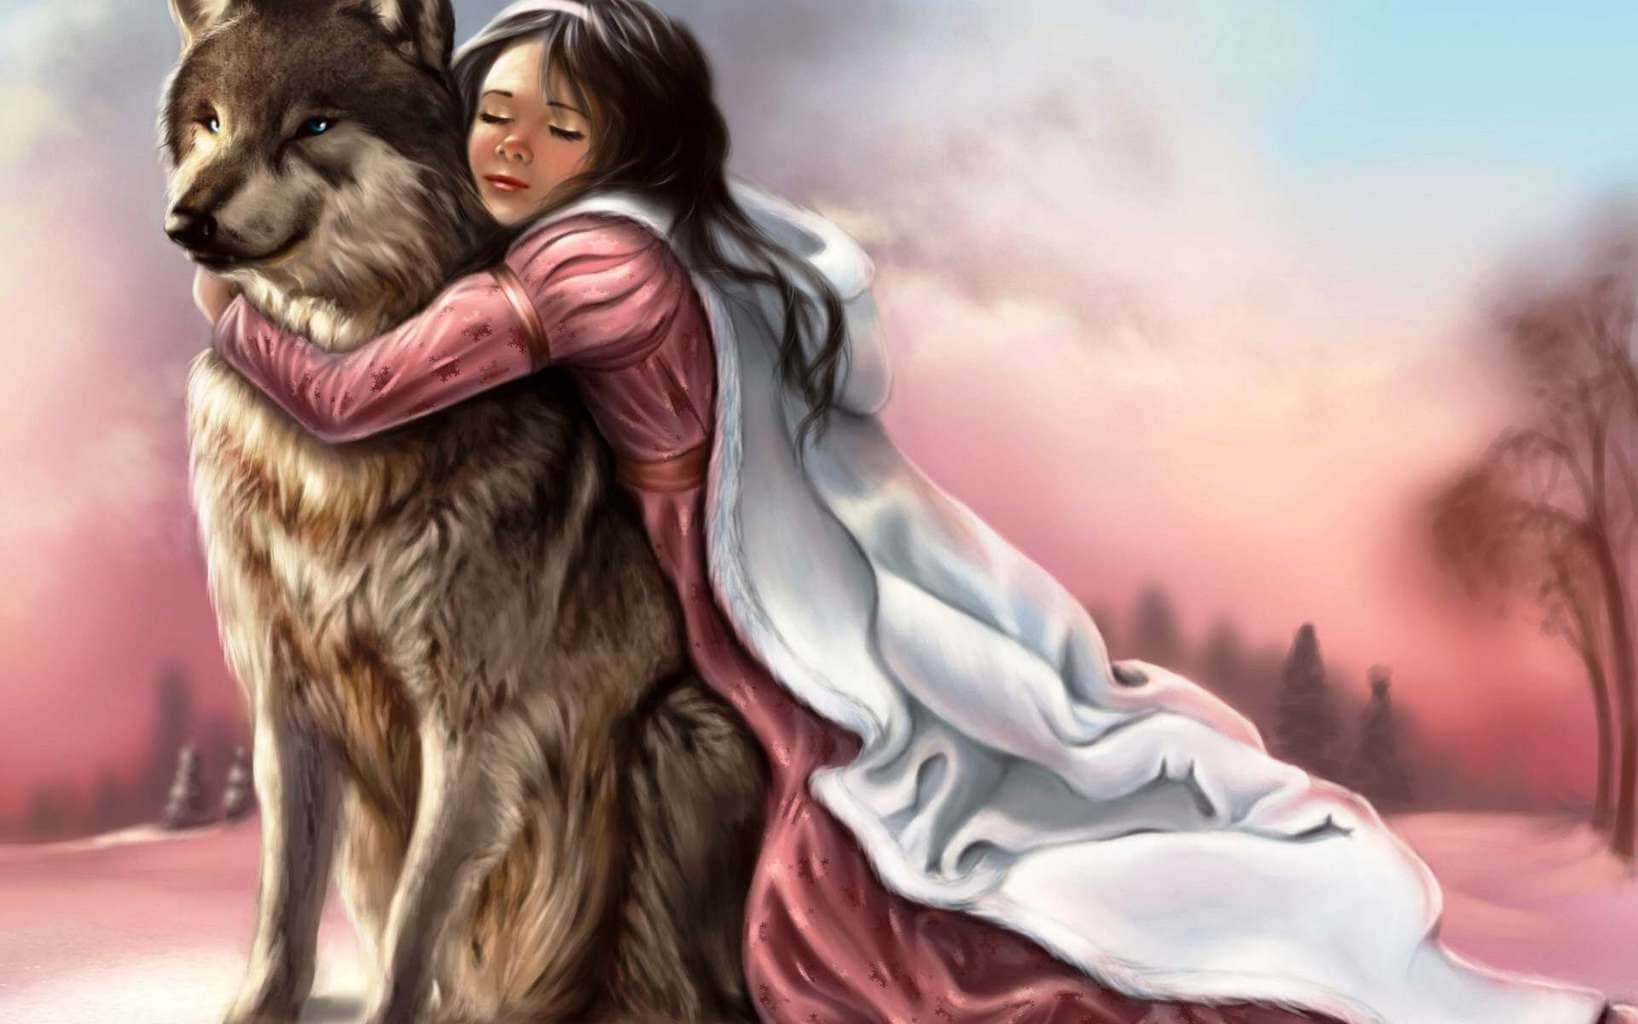 Dog-and-cute-girl-friendship-and-hugs